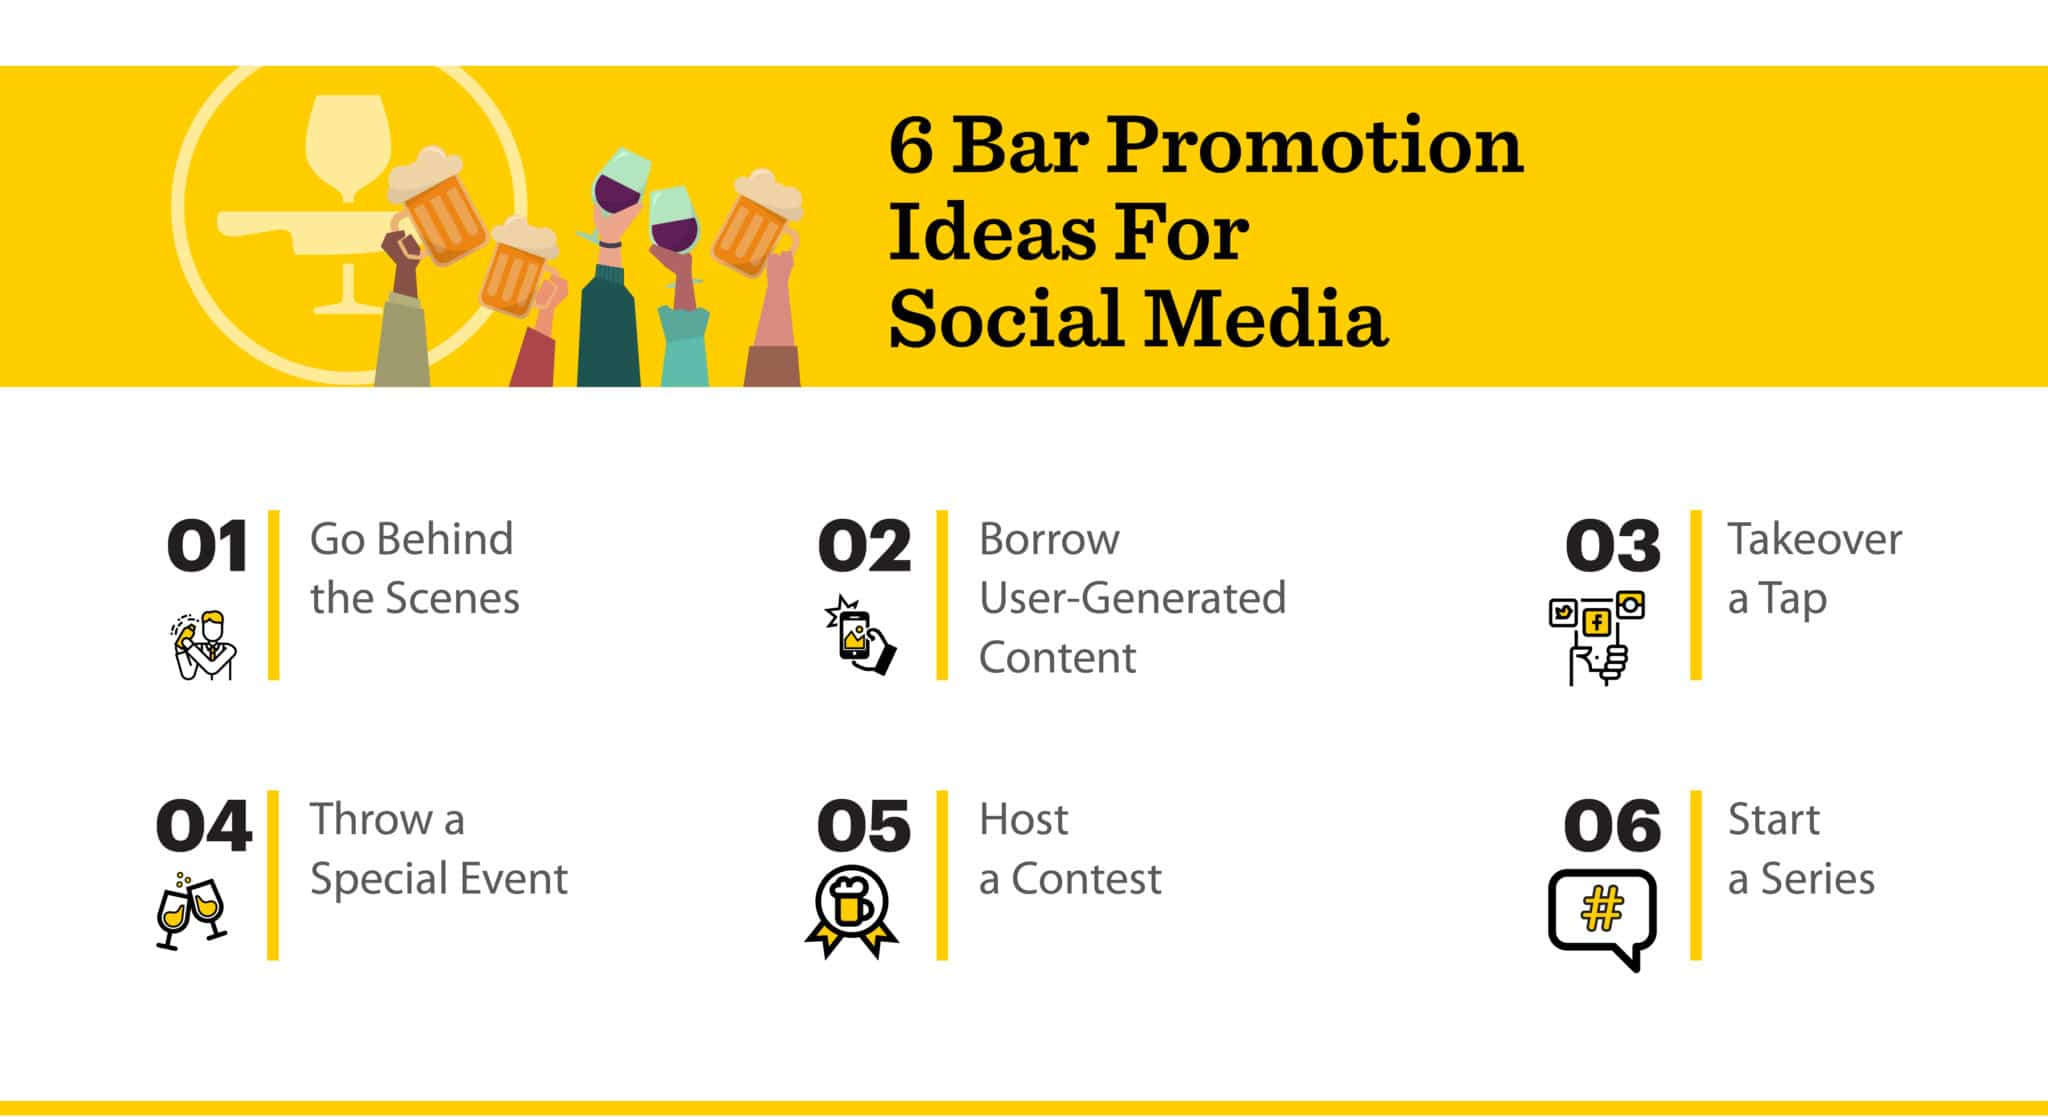 Promote your bar on social media